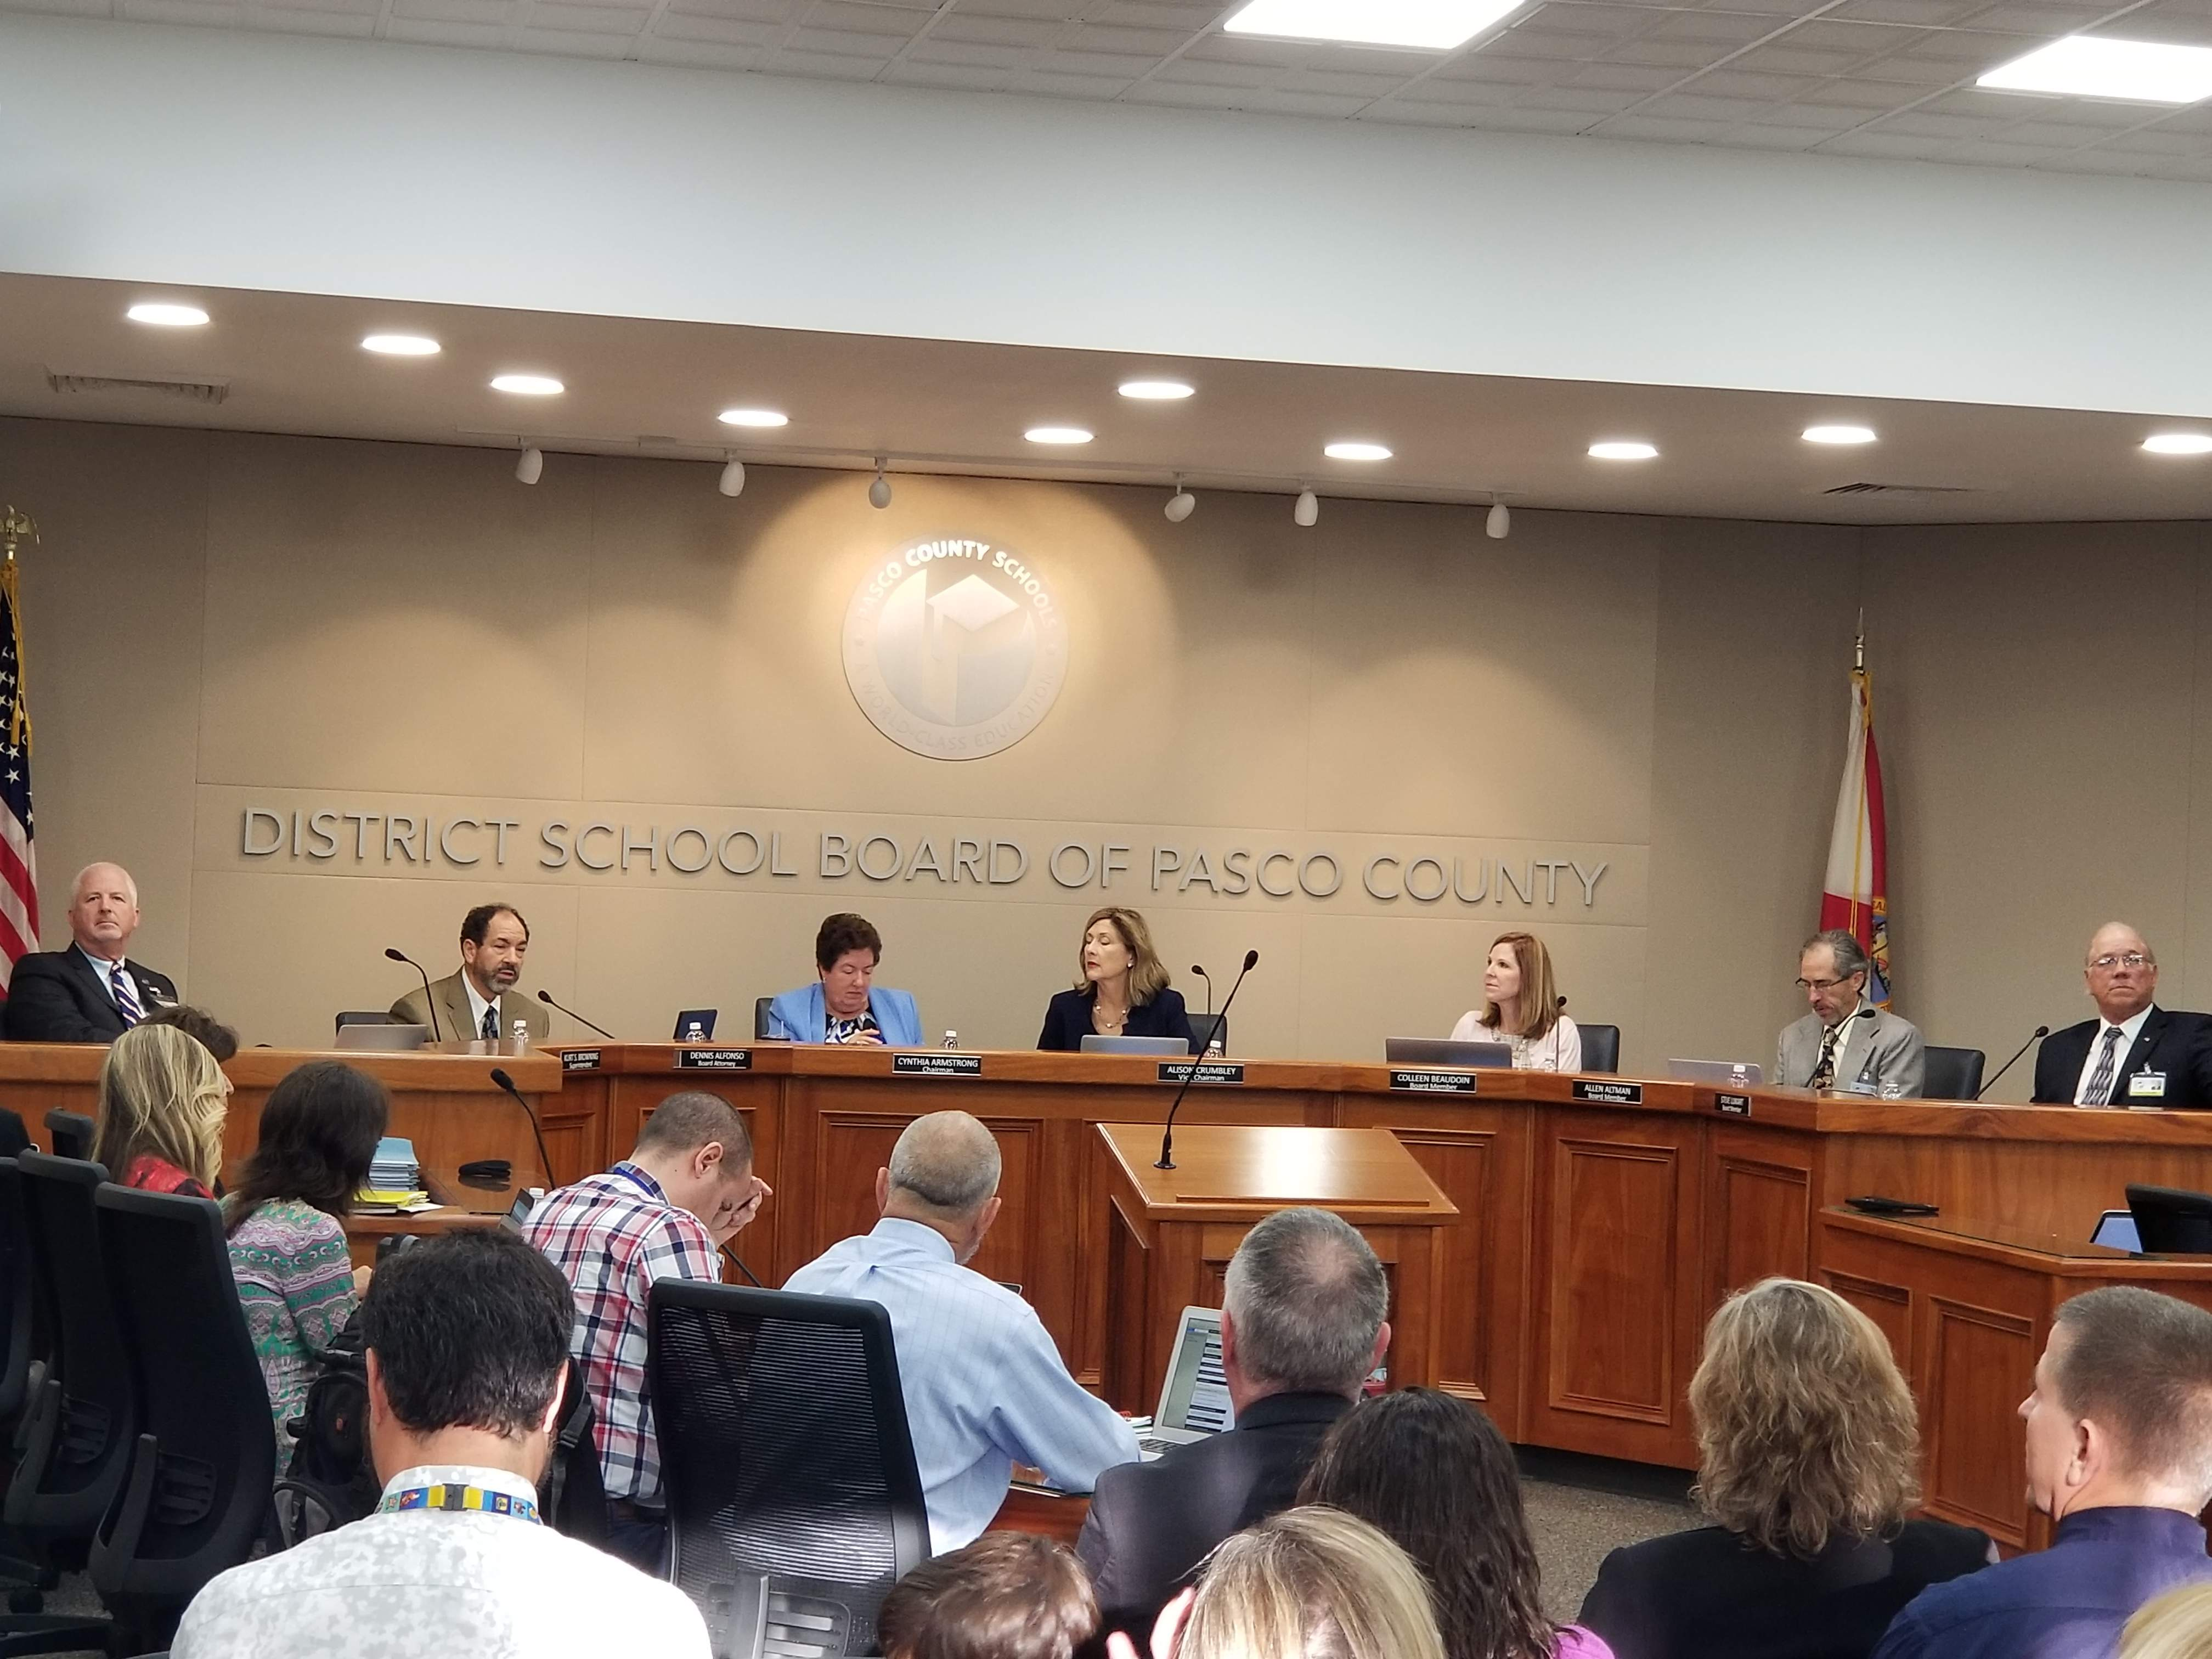 Religious rights group protests Pasco's treatment of